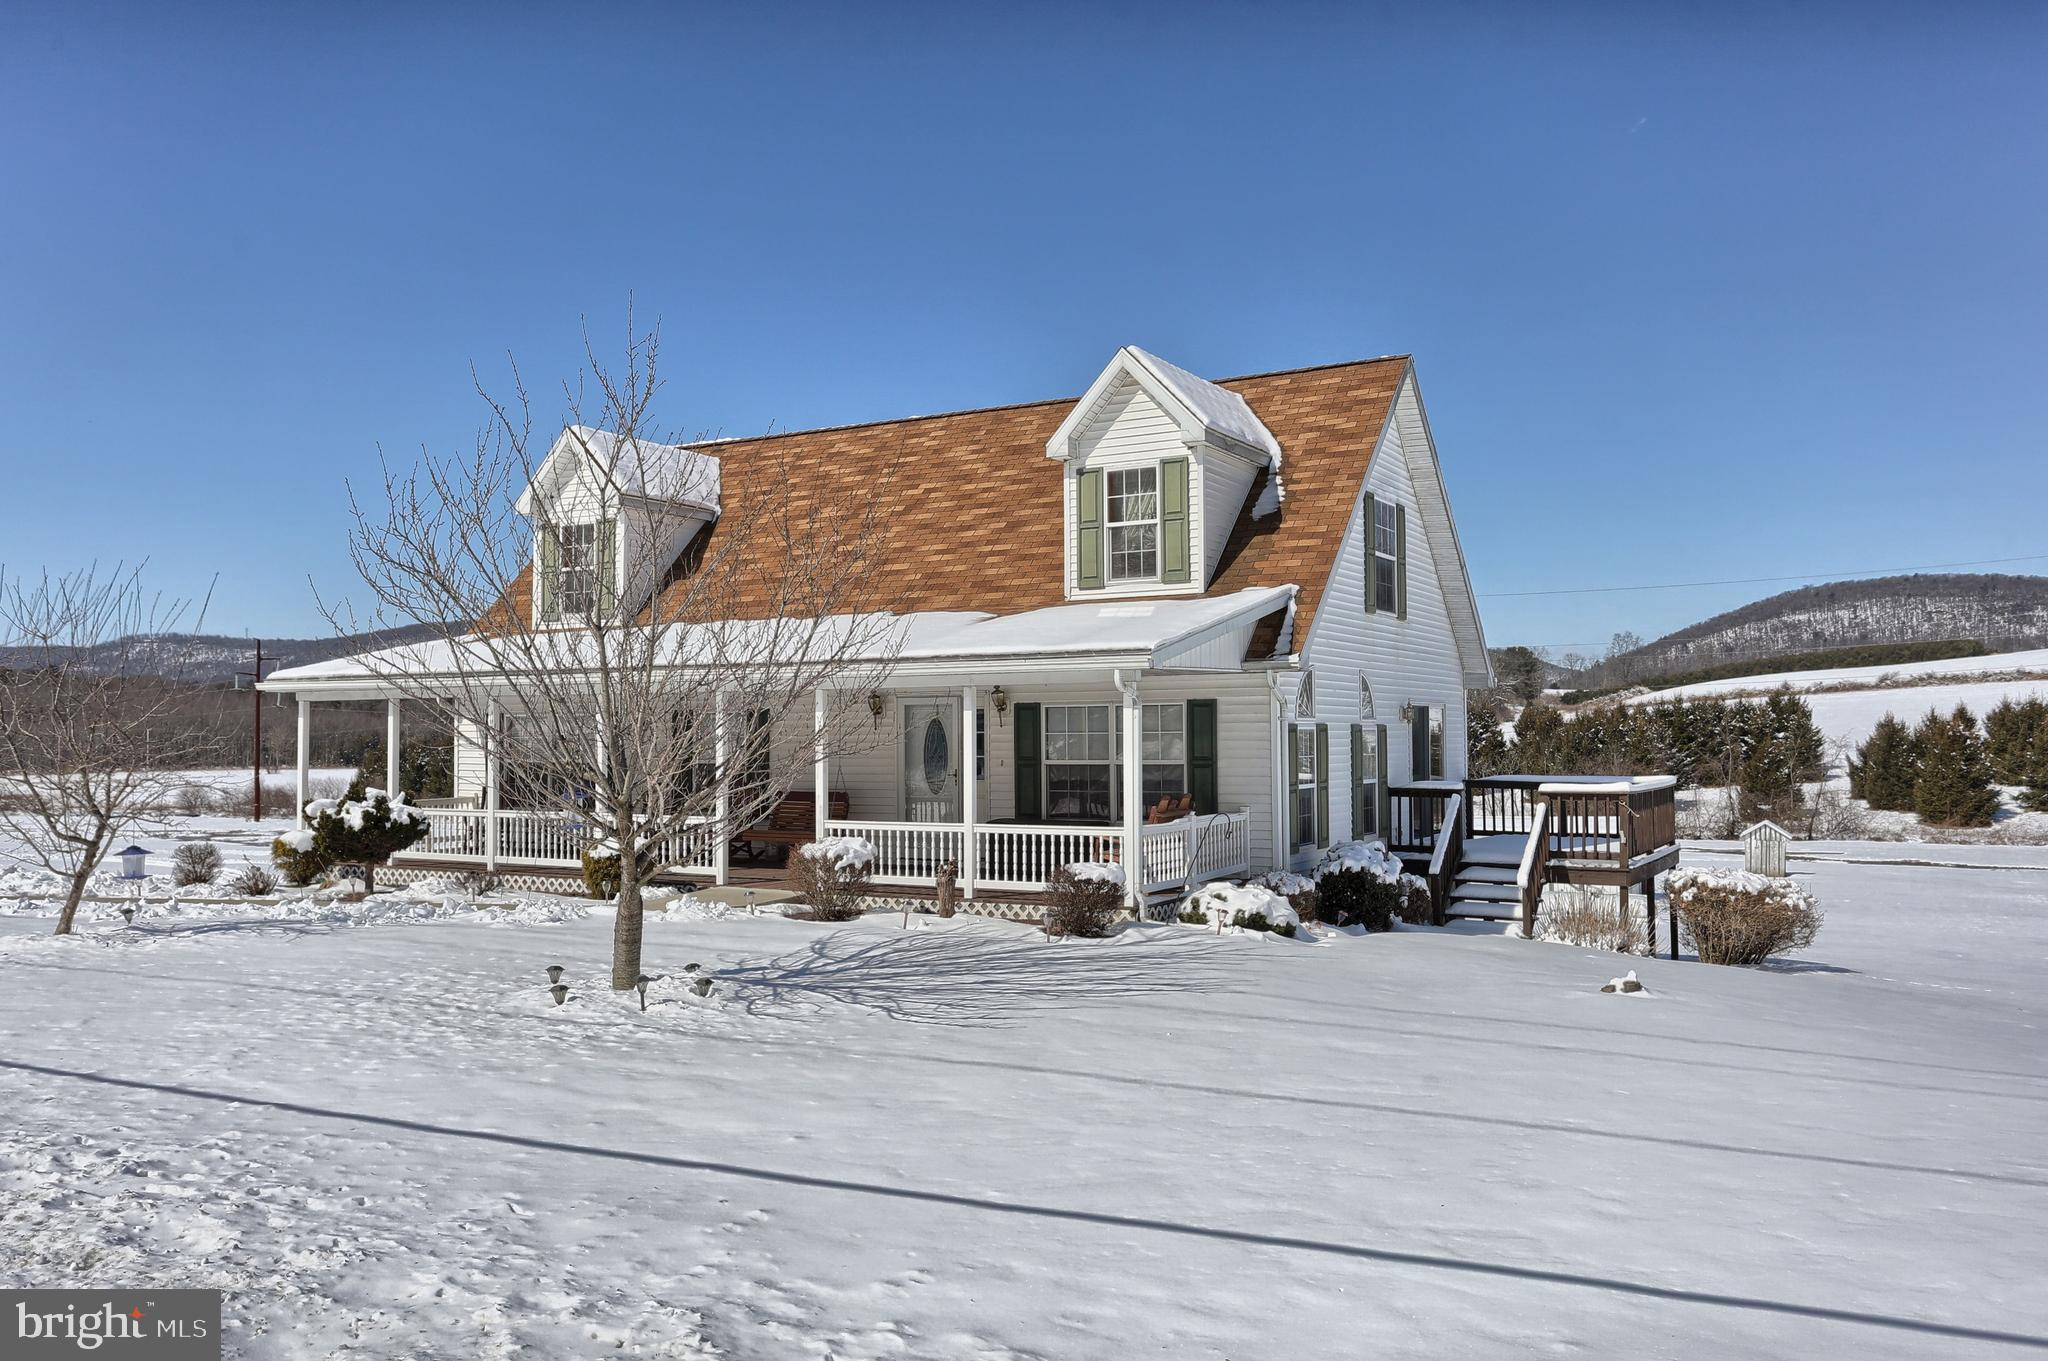 81 SWEET ARROW LAKE ROAD, PINE GROVE, PA 17963